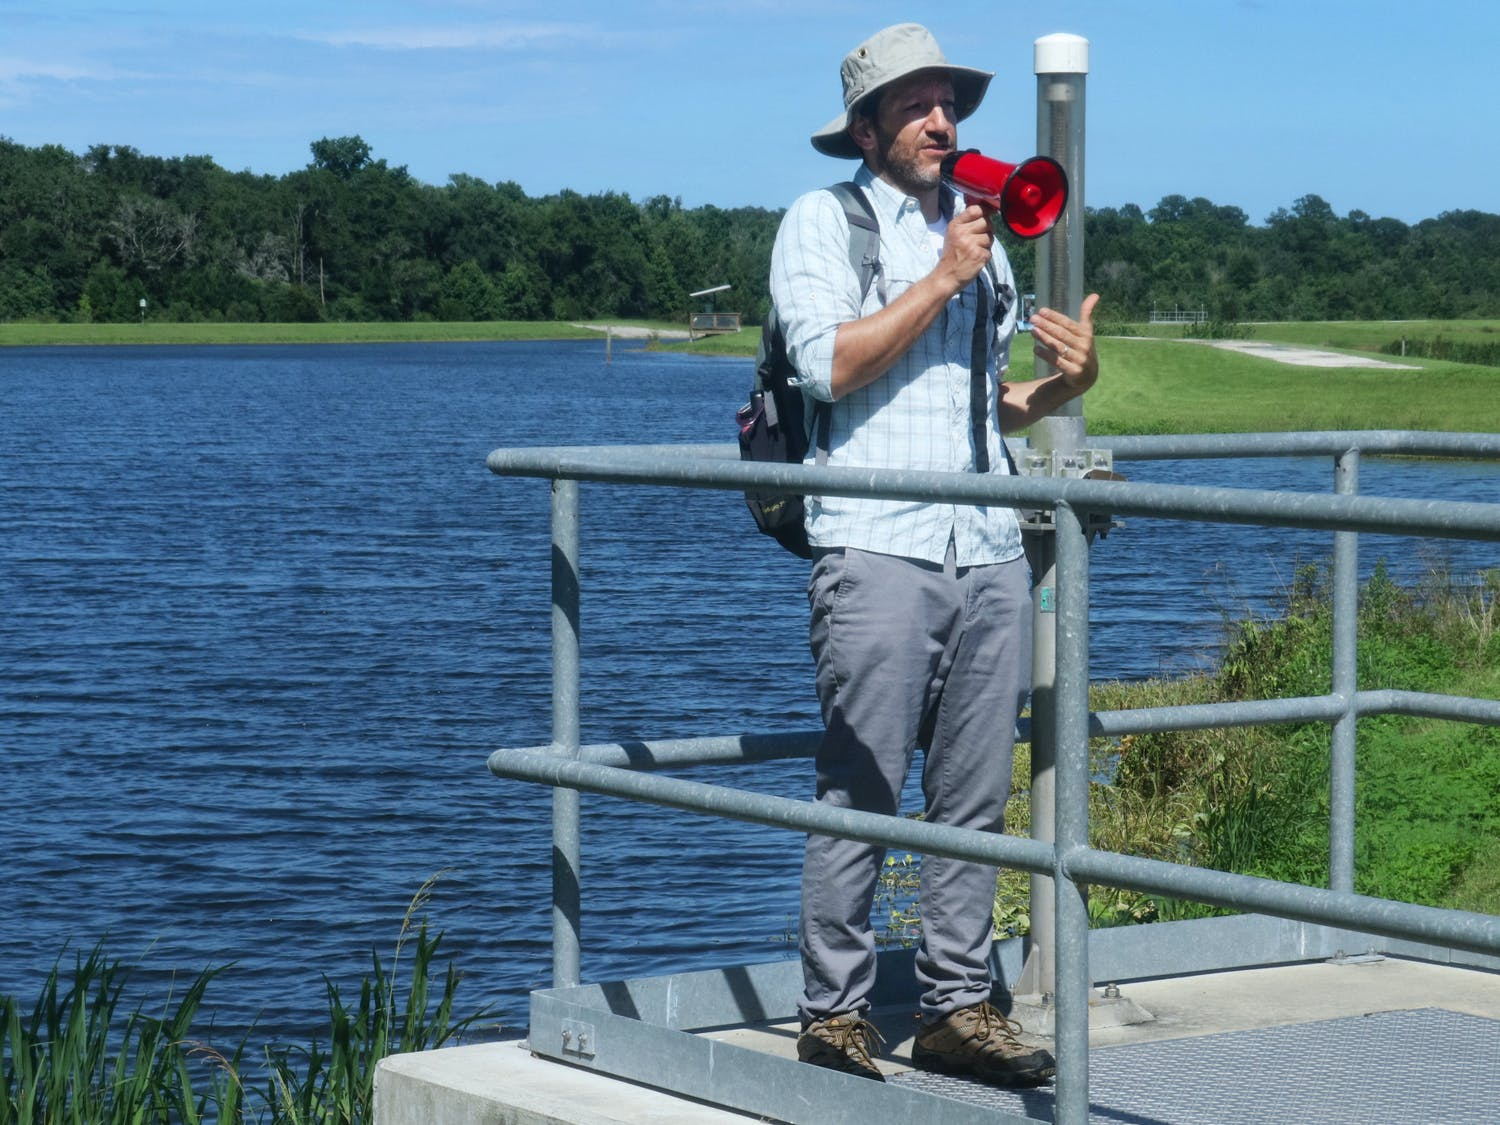 """David Kaplan, an associate environmental engineering professor at UF, gives the Summer Engineering Experience for Kids attendees a tour of Sweetwater Wetlands Park on Monday, June 28, 2021. Kaplan hopes the camp can serve as """"motivation to look to nature for a way to design things that minimize human impact."""""""